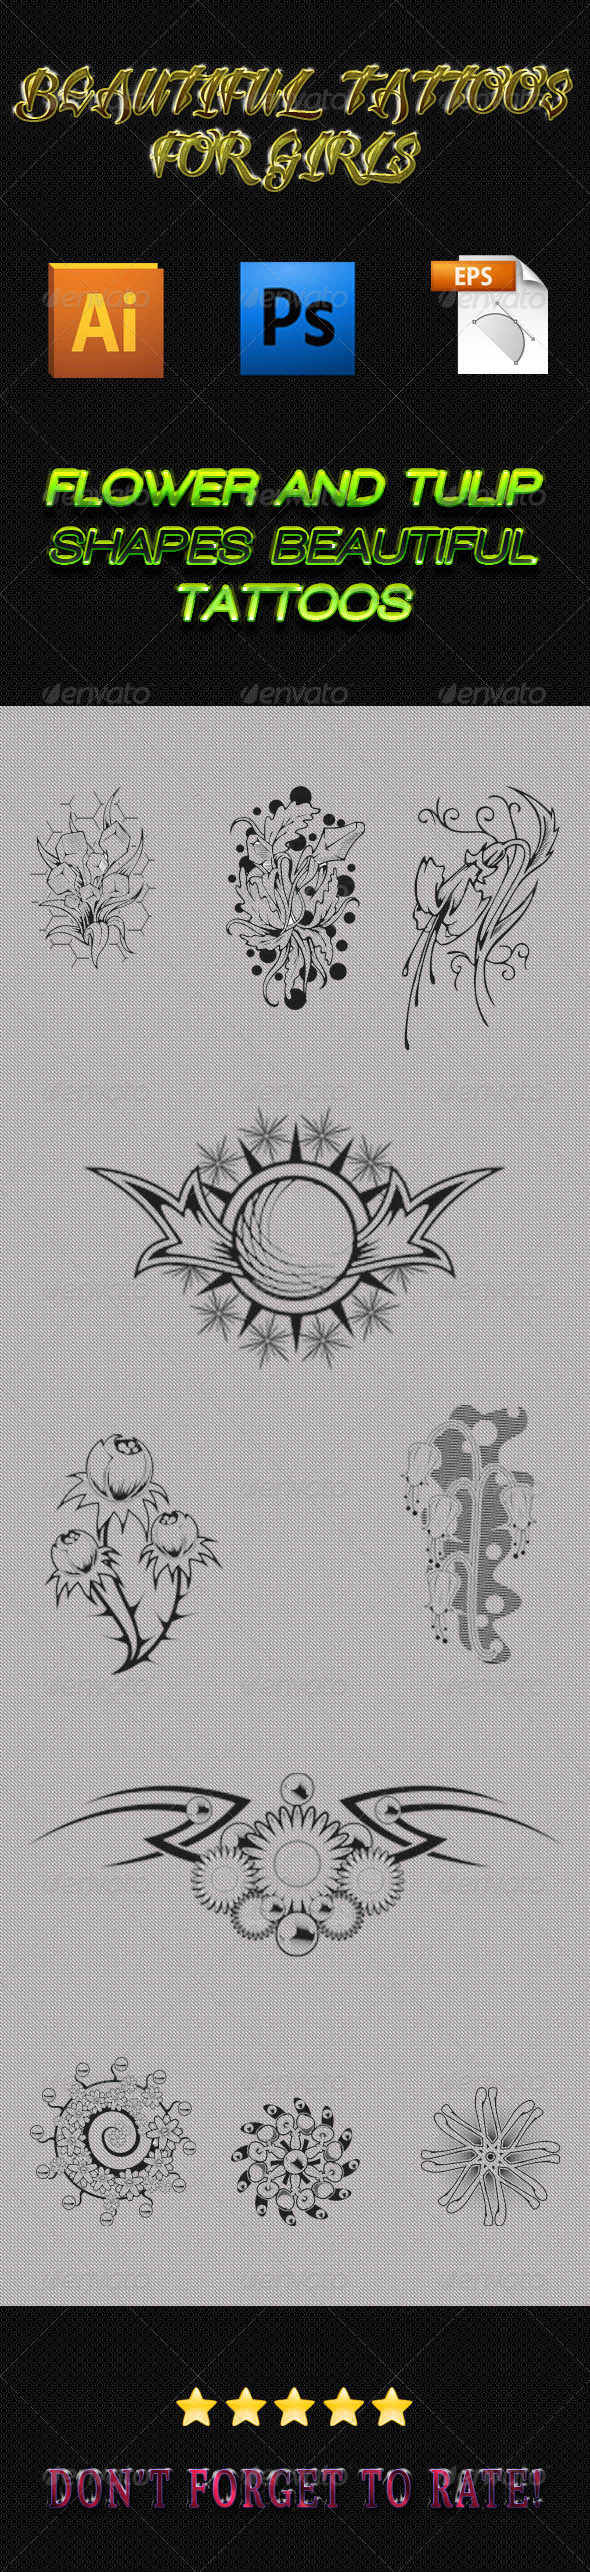 Girls Tattoos 02 - Tattoos Vectors